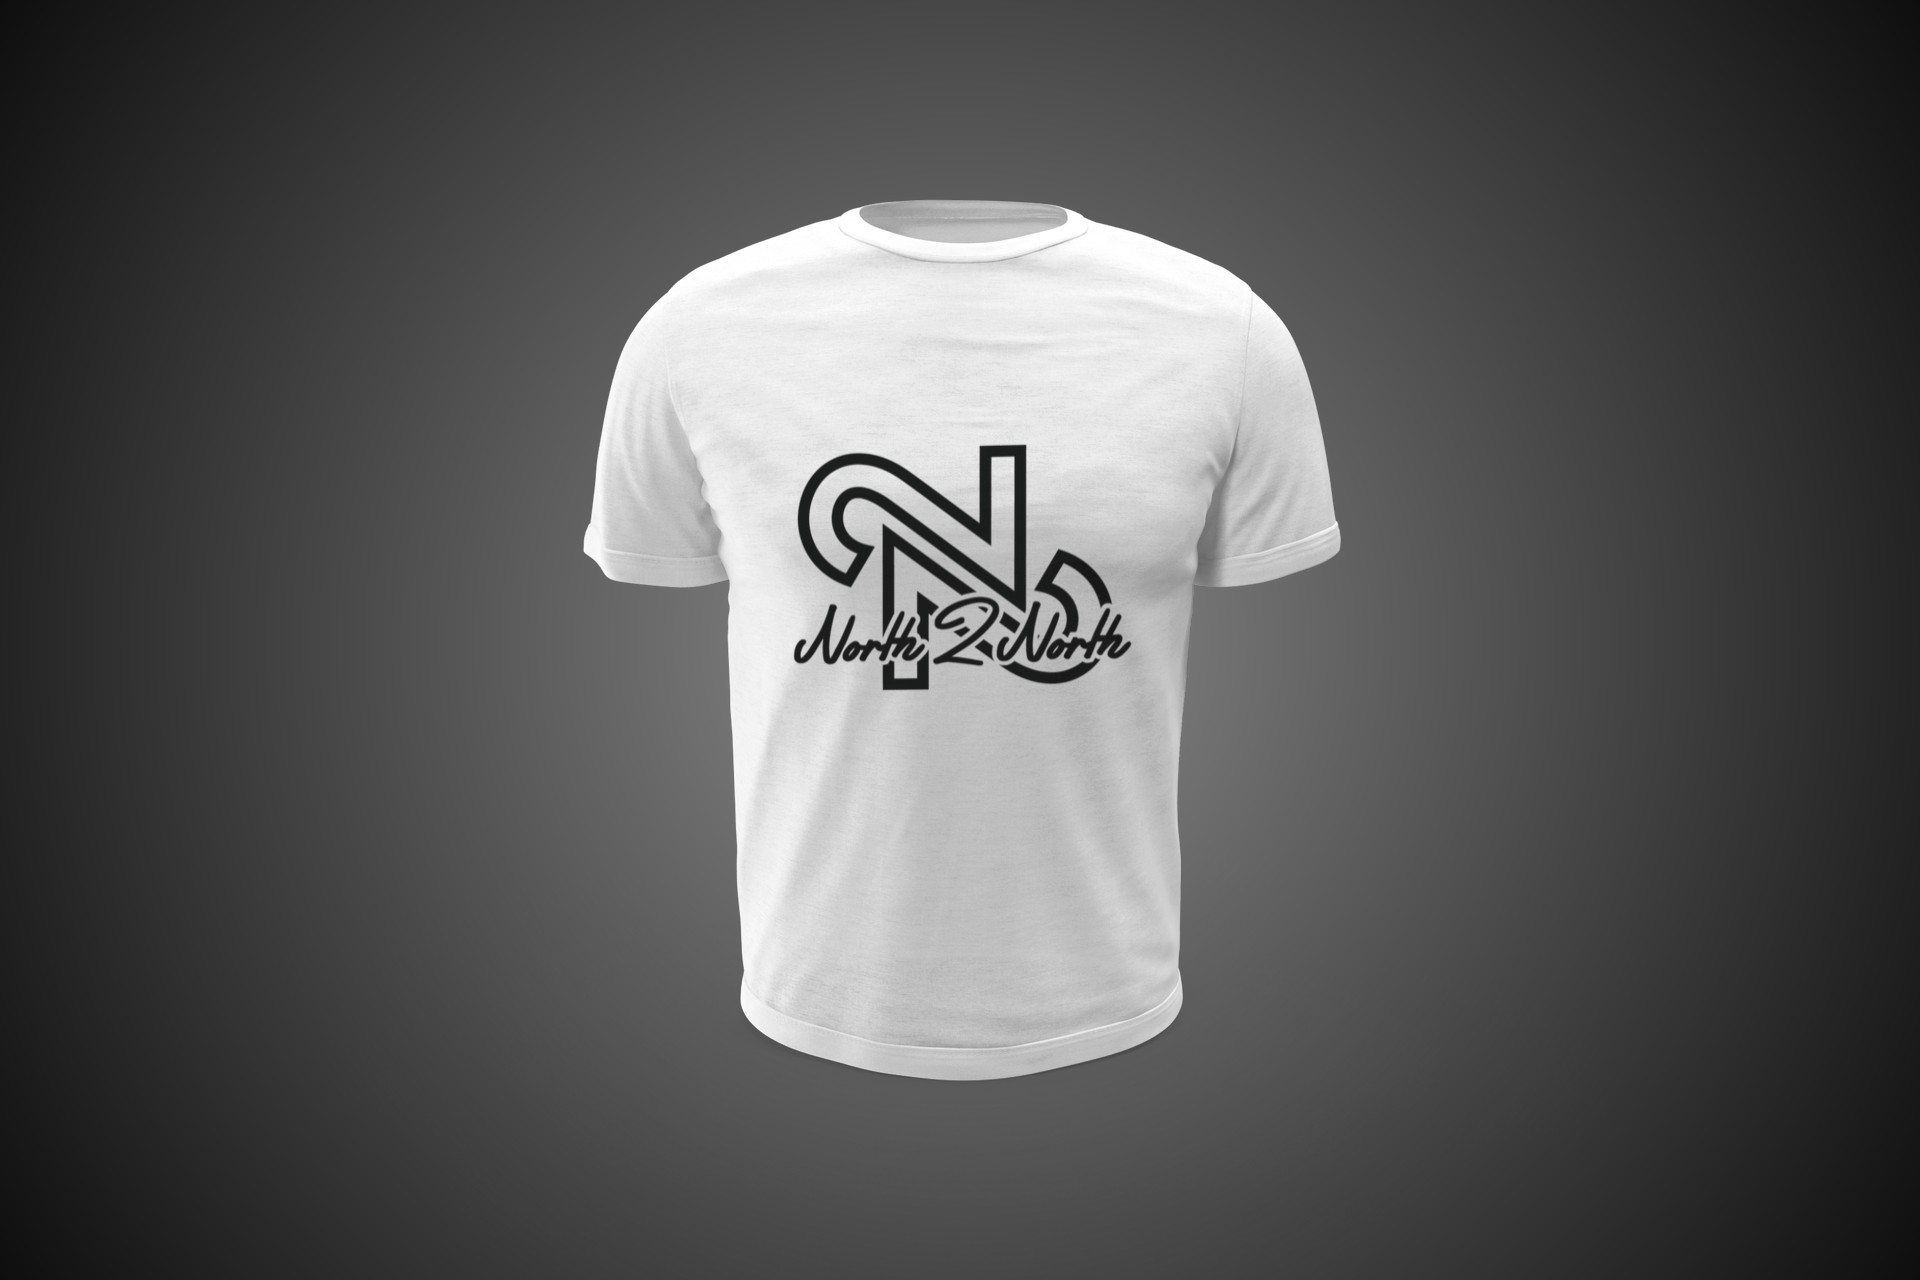 North 2 North Logo Design Clothing Brand